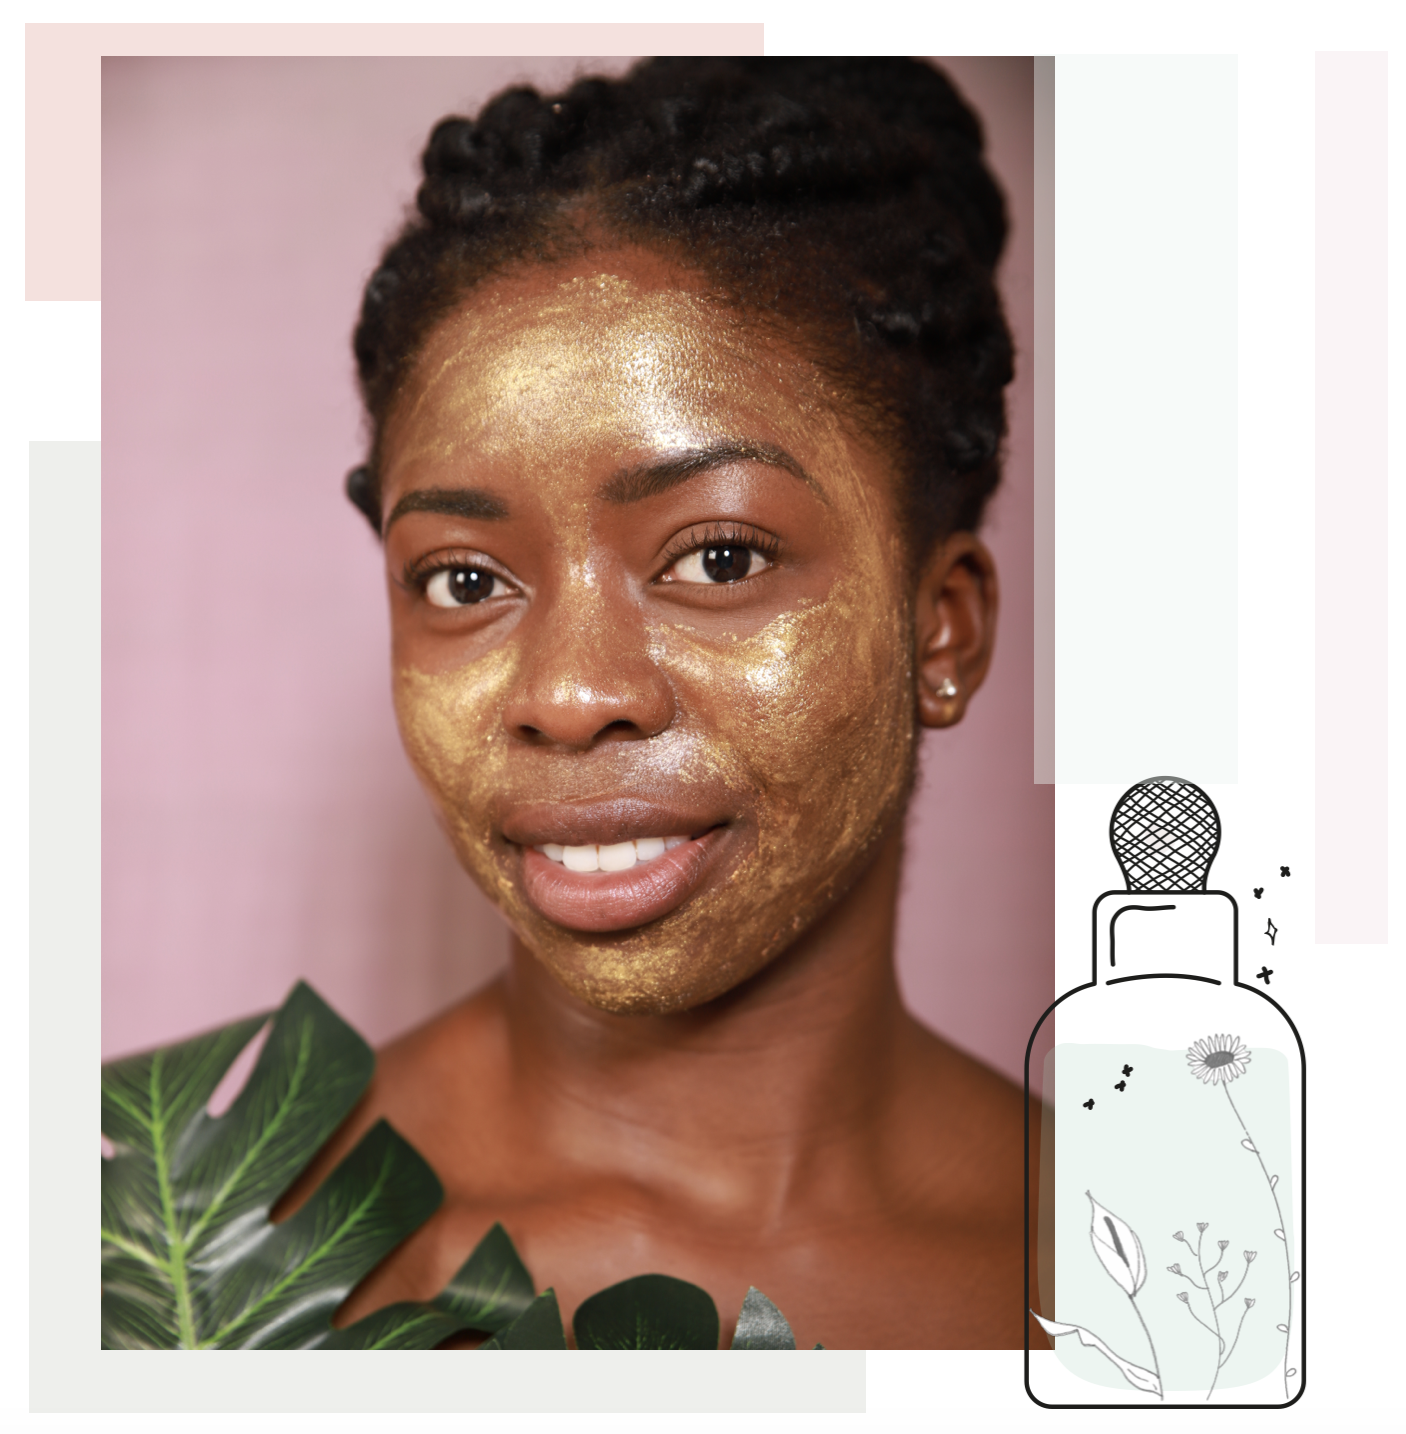 £90/45 mins - The Conscious Choice - For Sustainable Skincare ShoppersThe consultation for you if you are looking to make the switch to more sustainable and/or 'natural' products. Like the La Crème Consultation, this consultation includes a detailed Holistic Skinterview, OBSERV Skin Diagnosis, and the Lion/ne Shopping List. Your shopping list will be tailored to your product preferences, whether that be 'cruelty-free' or sustainable skincare.